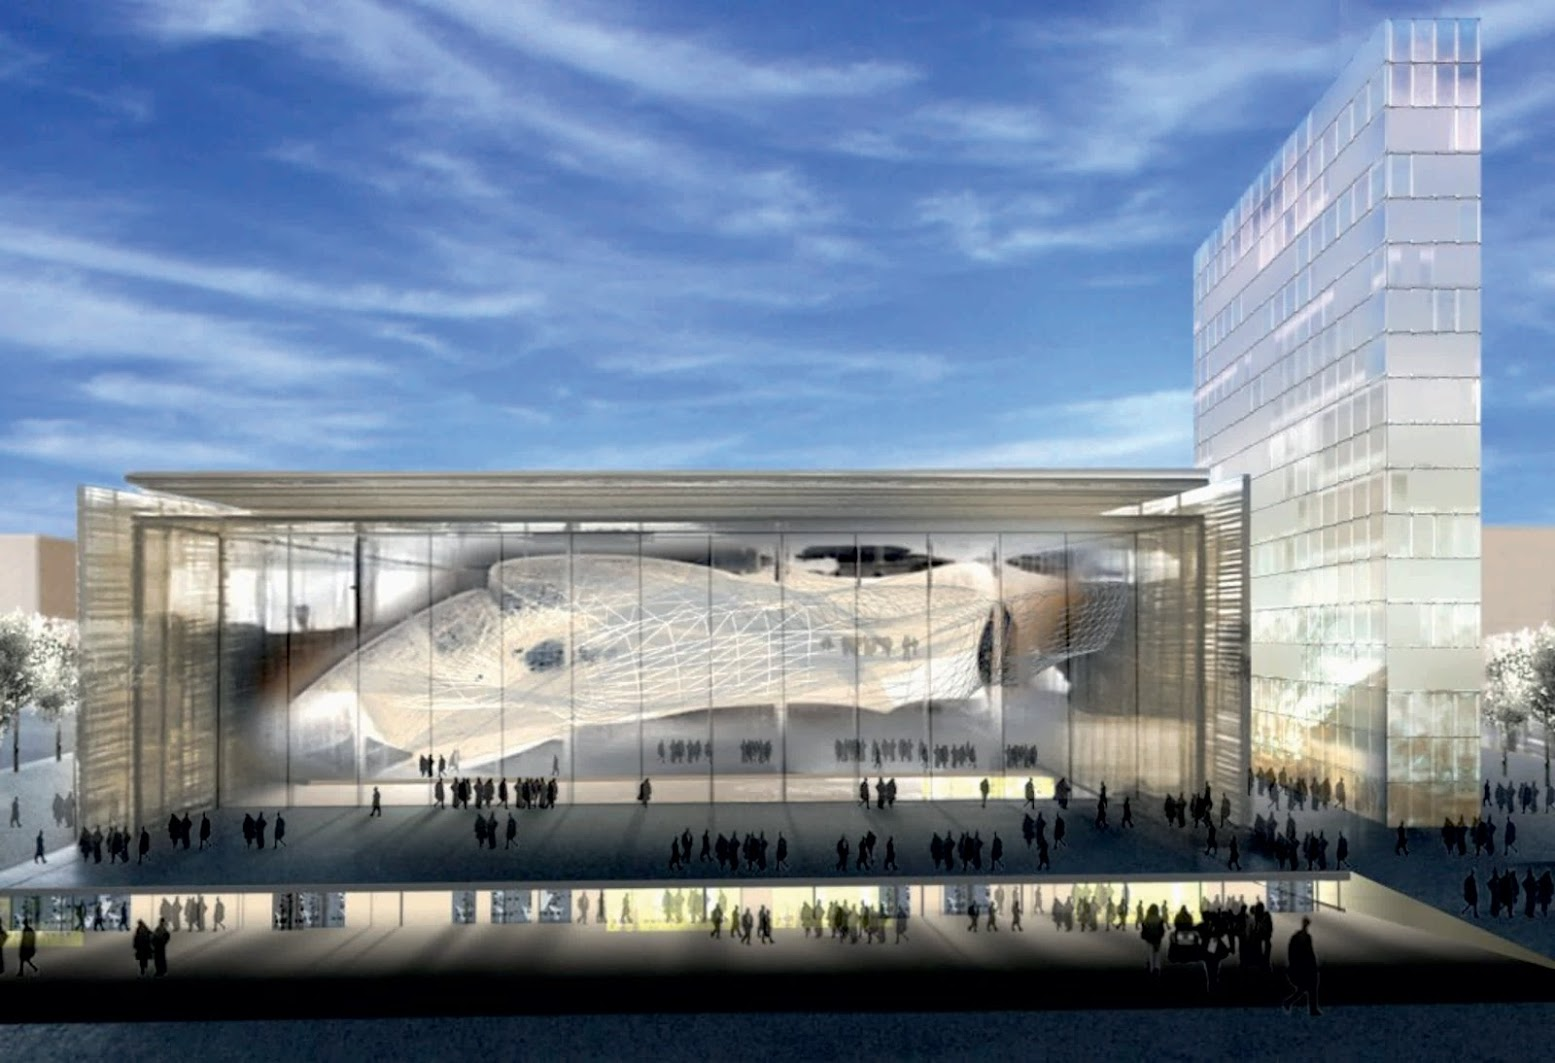 Roma, Italia: [EUR CONGRESS CENTER BY FUKSAS]